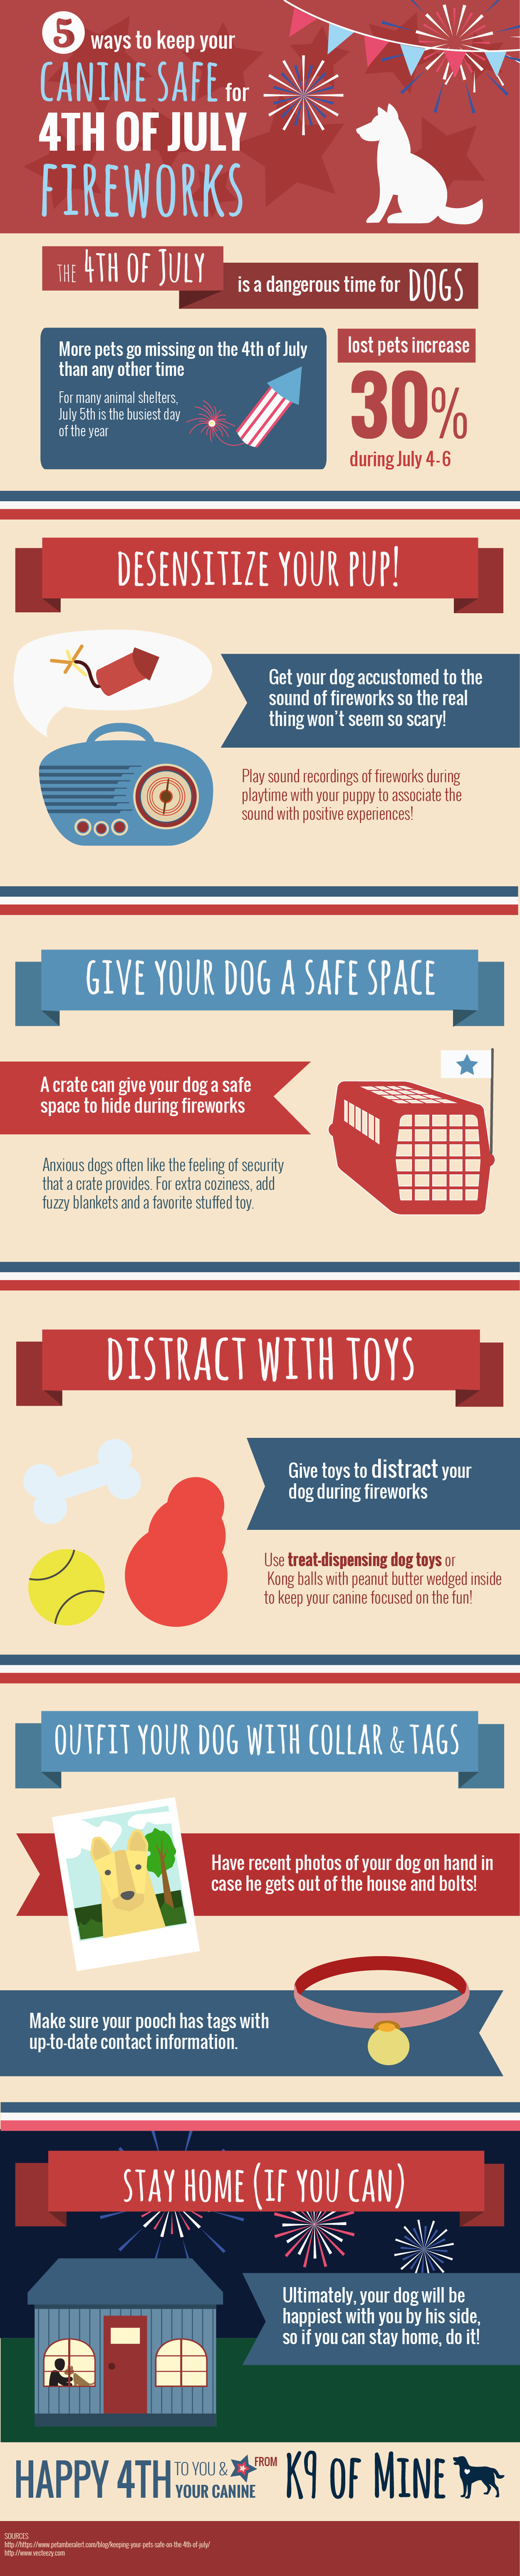 Preparing Your Pet for the 4th of July